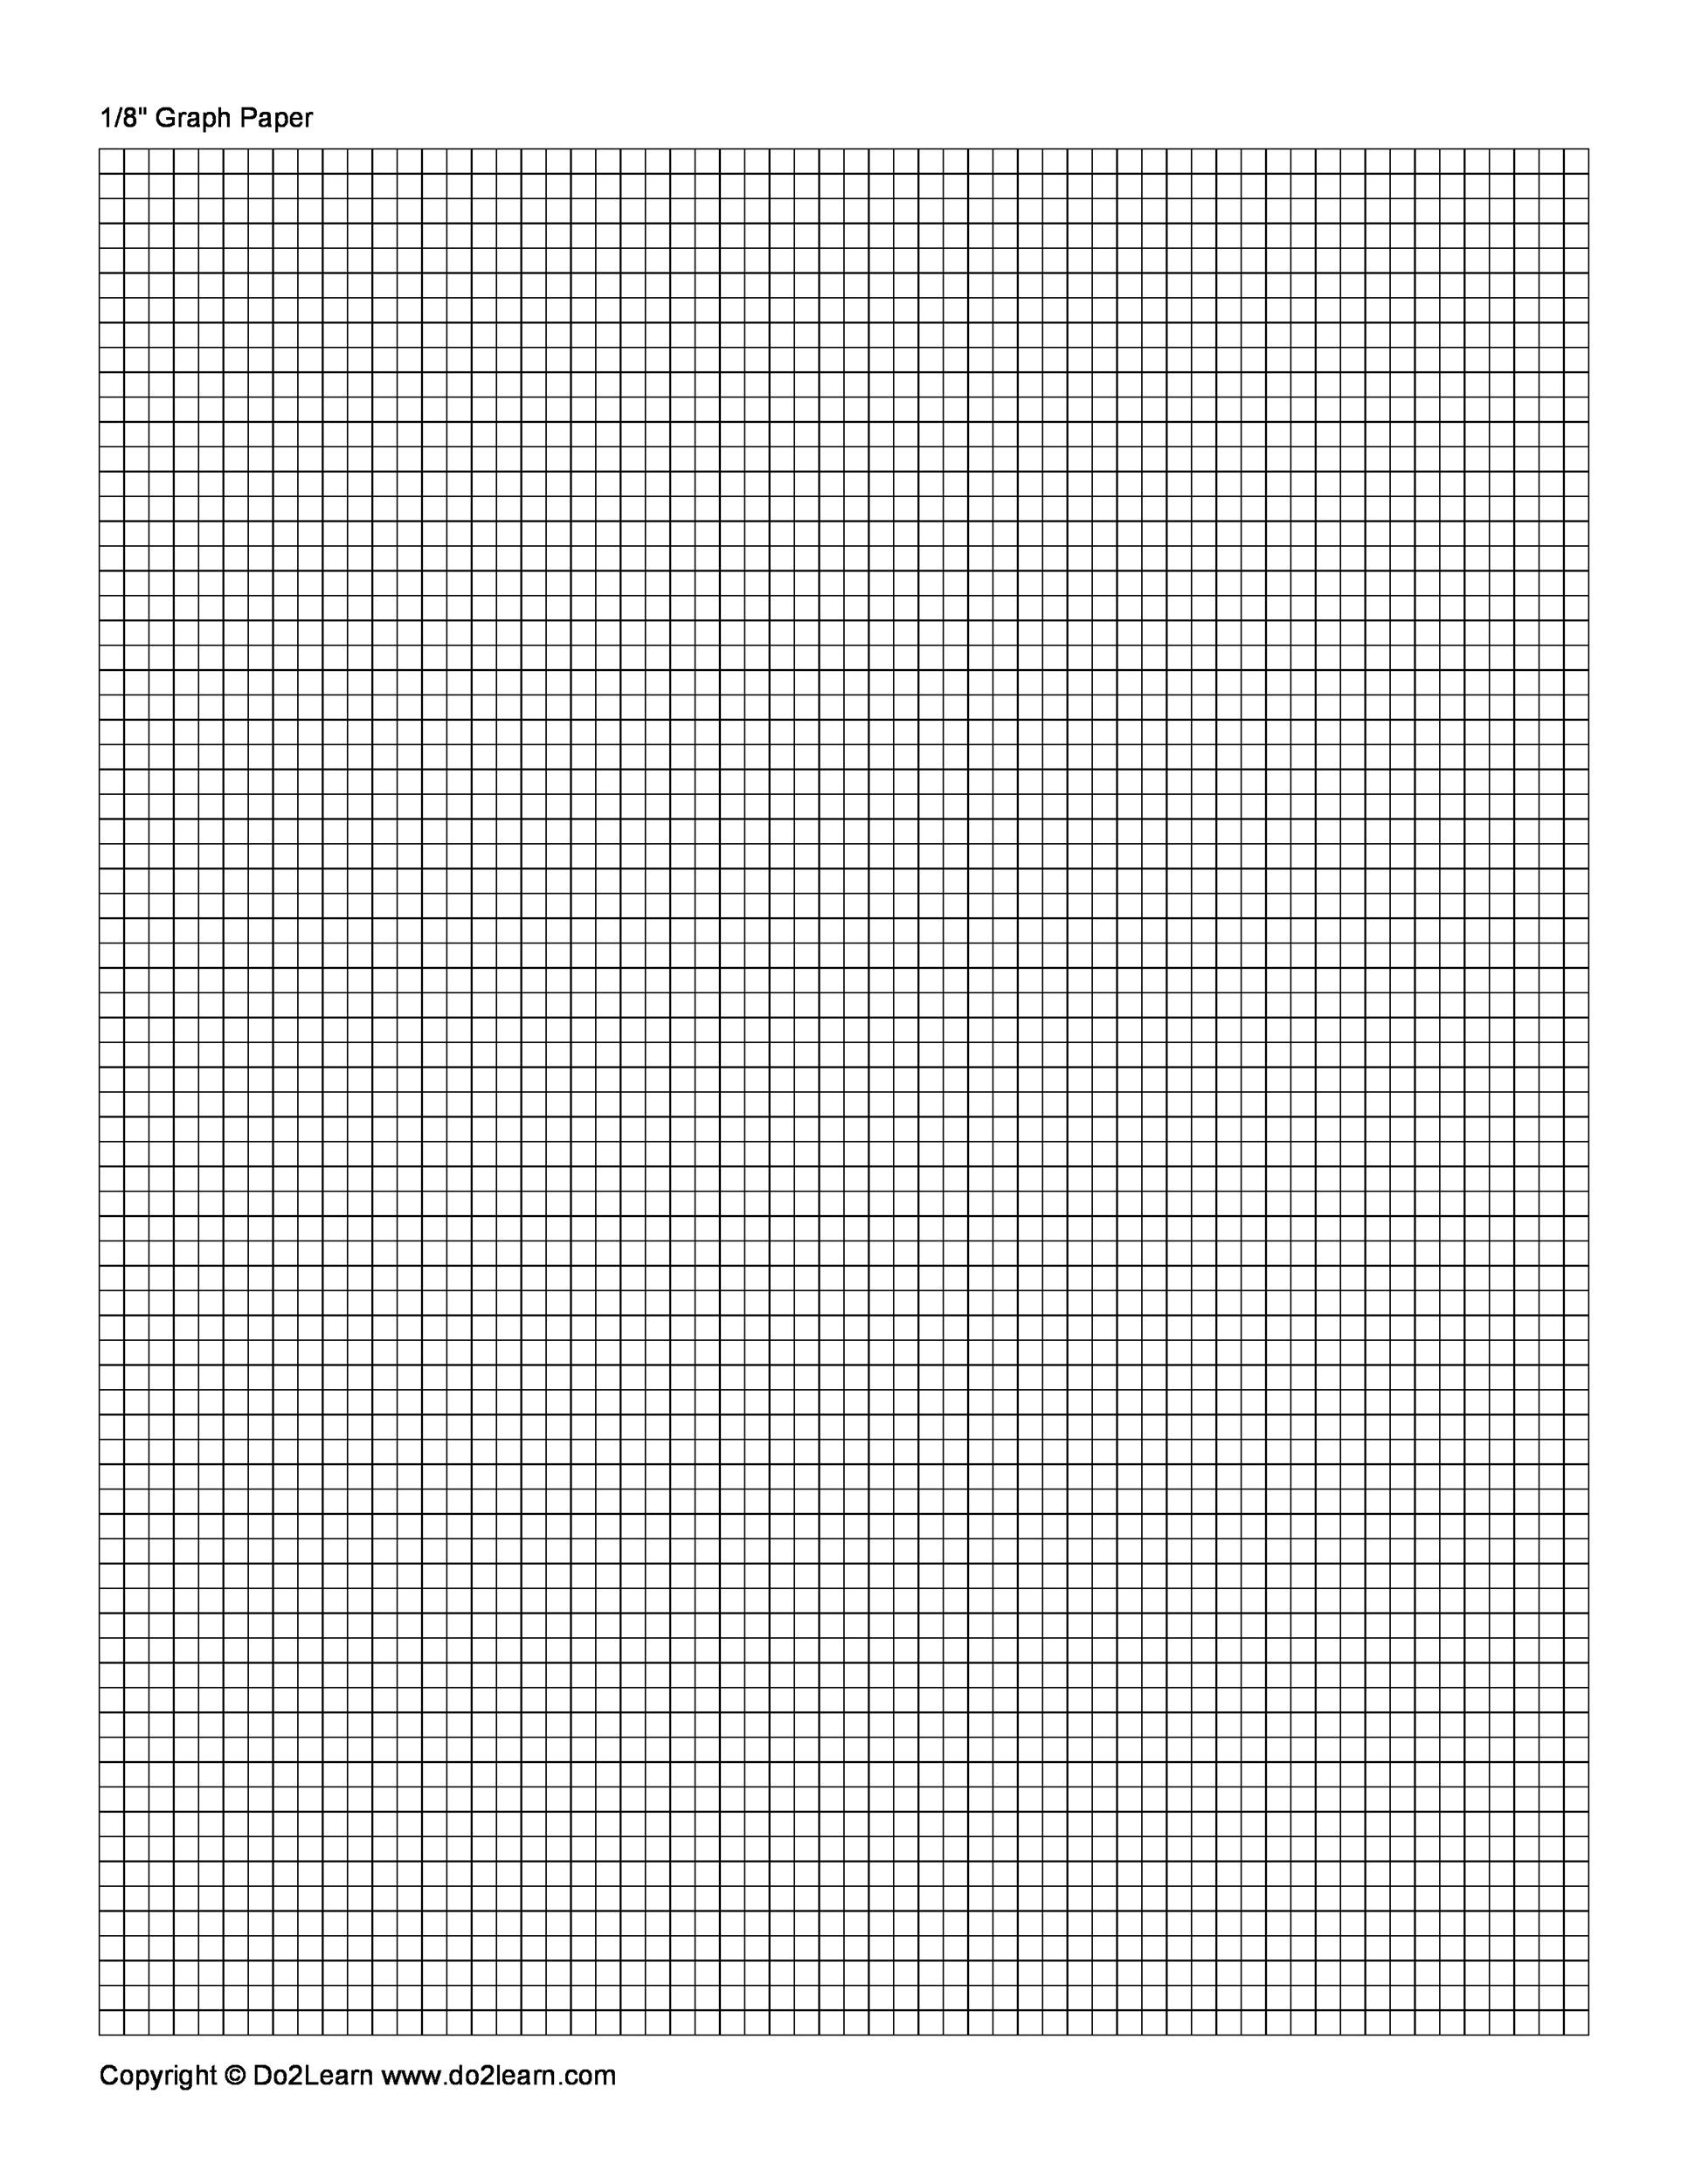 Printable Graph Paper Template 01